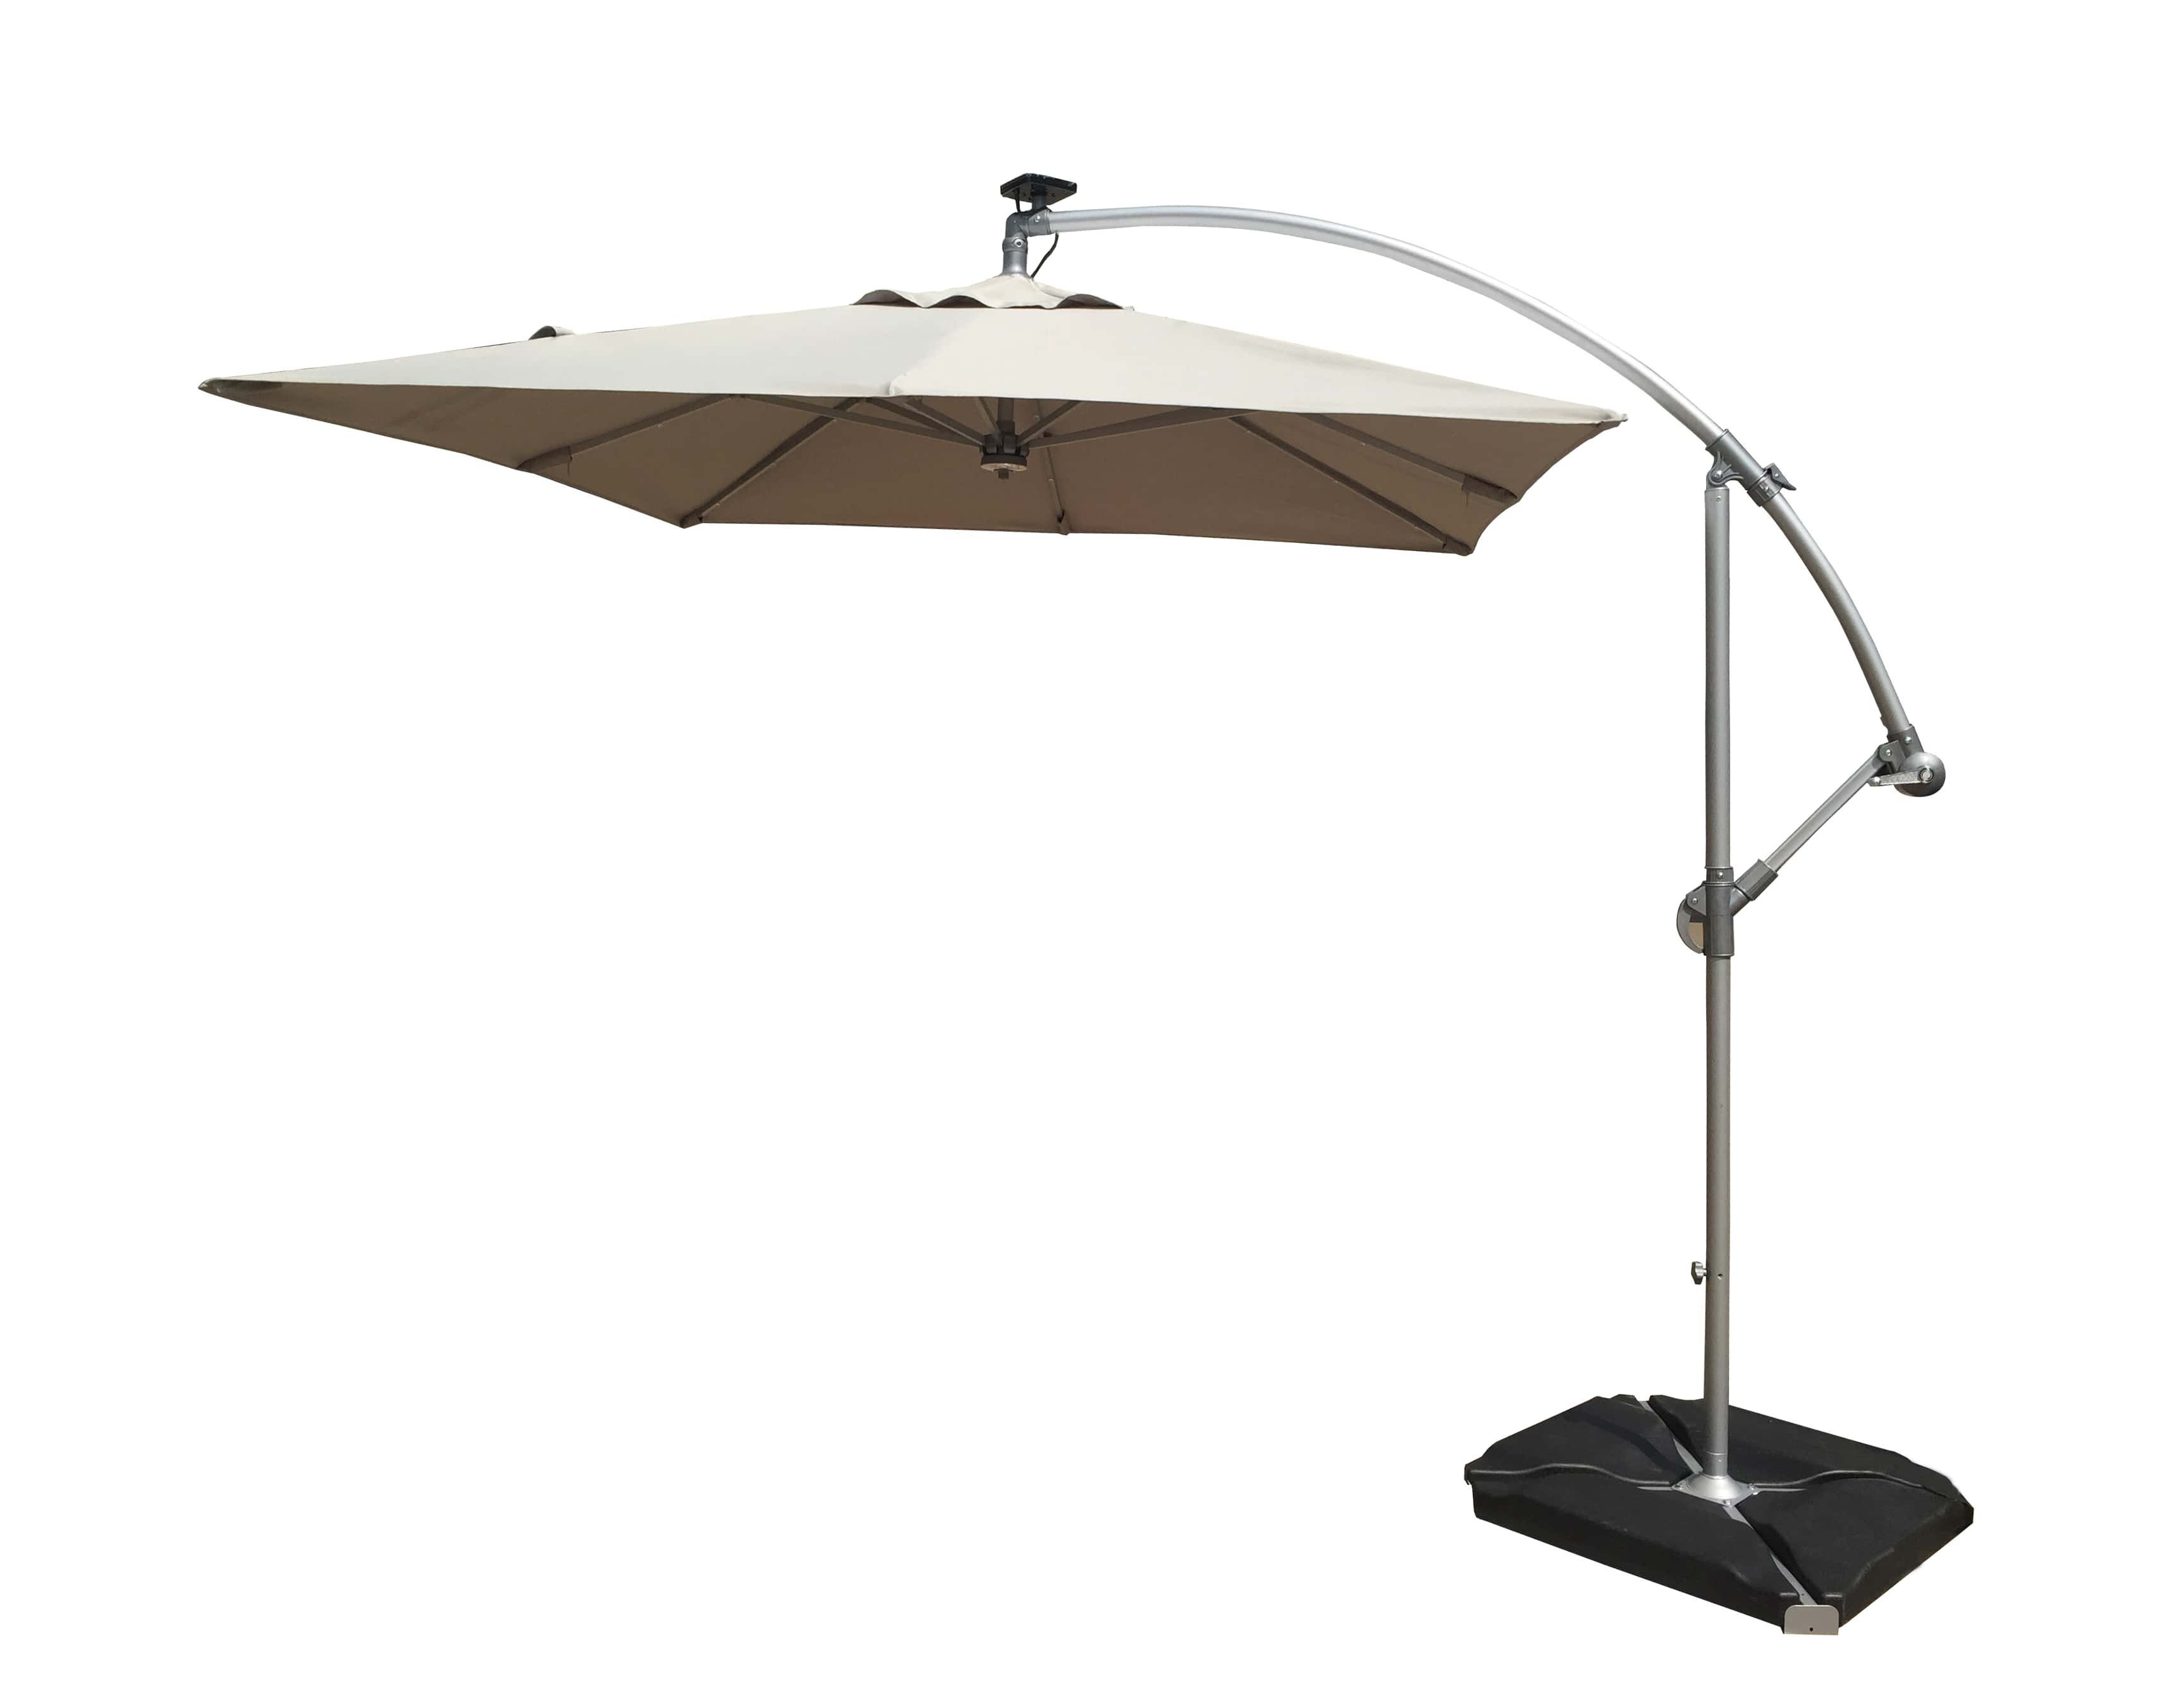 Popular 8' Cantilever Umbrella Within Justis Cantilever Umbrellas (View 2 of 20)